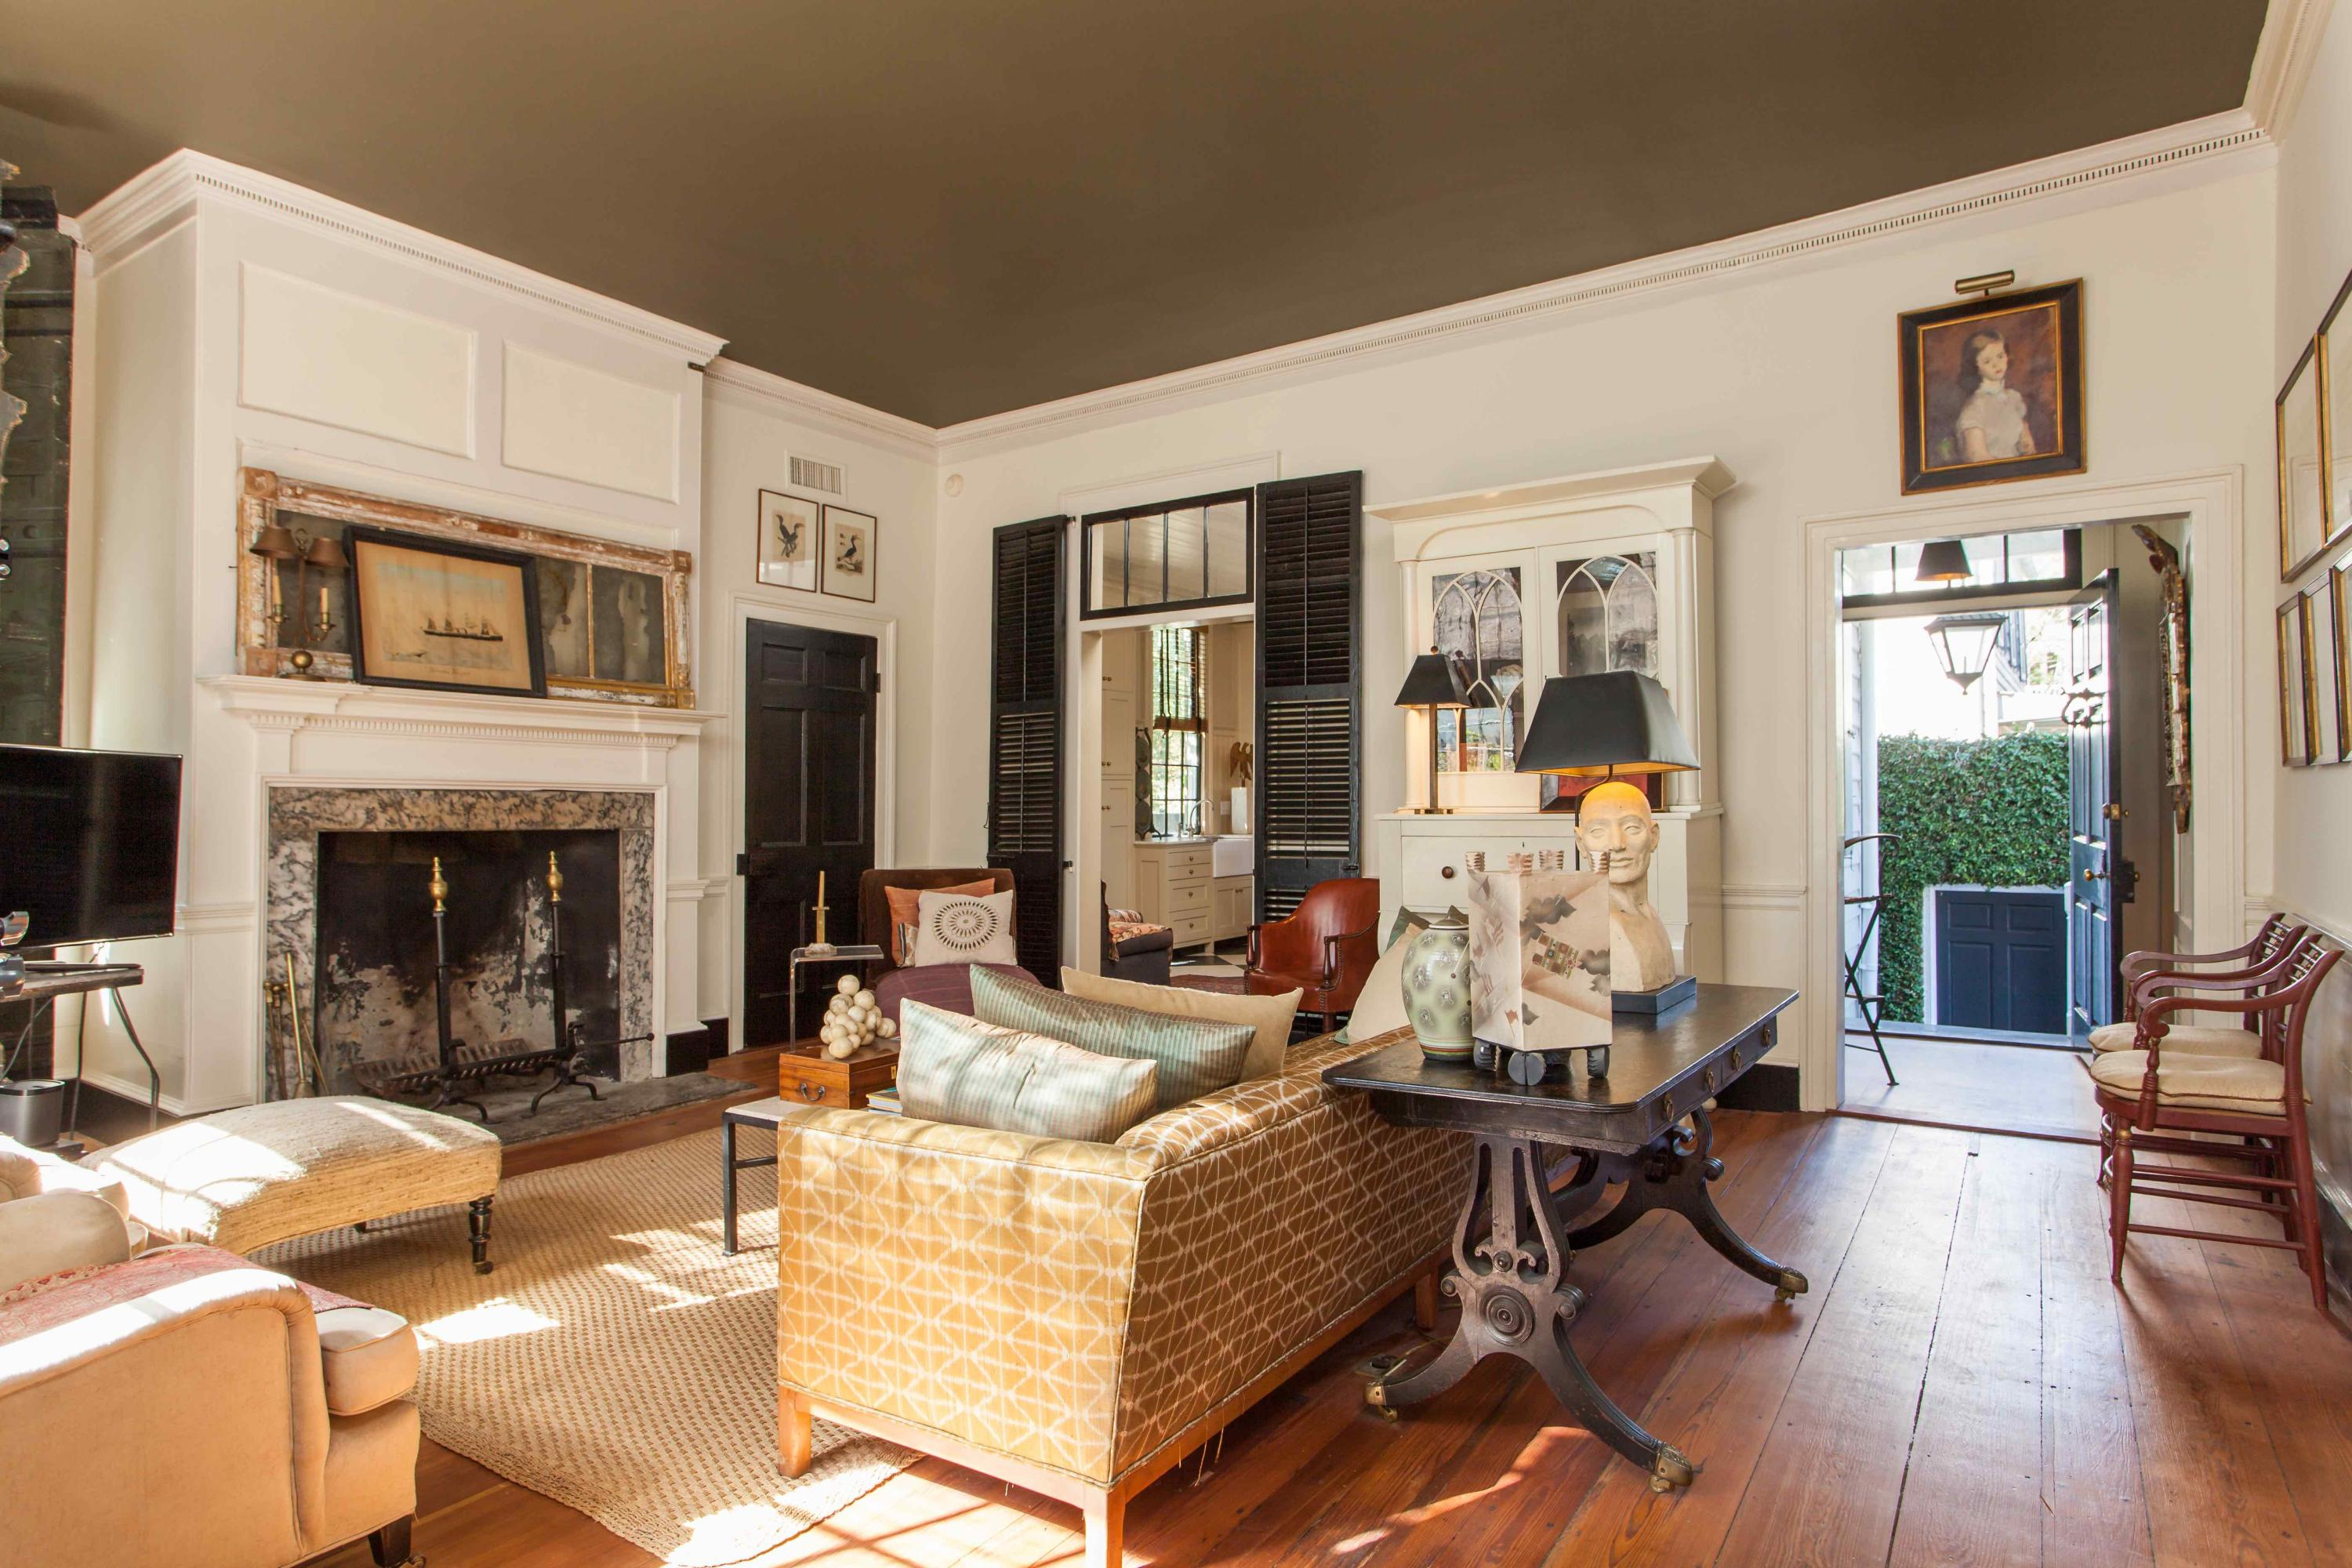 South of Broad Homes For Sale - 58 South Battery, Charleston, SC - 42